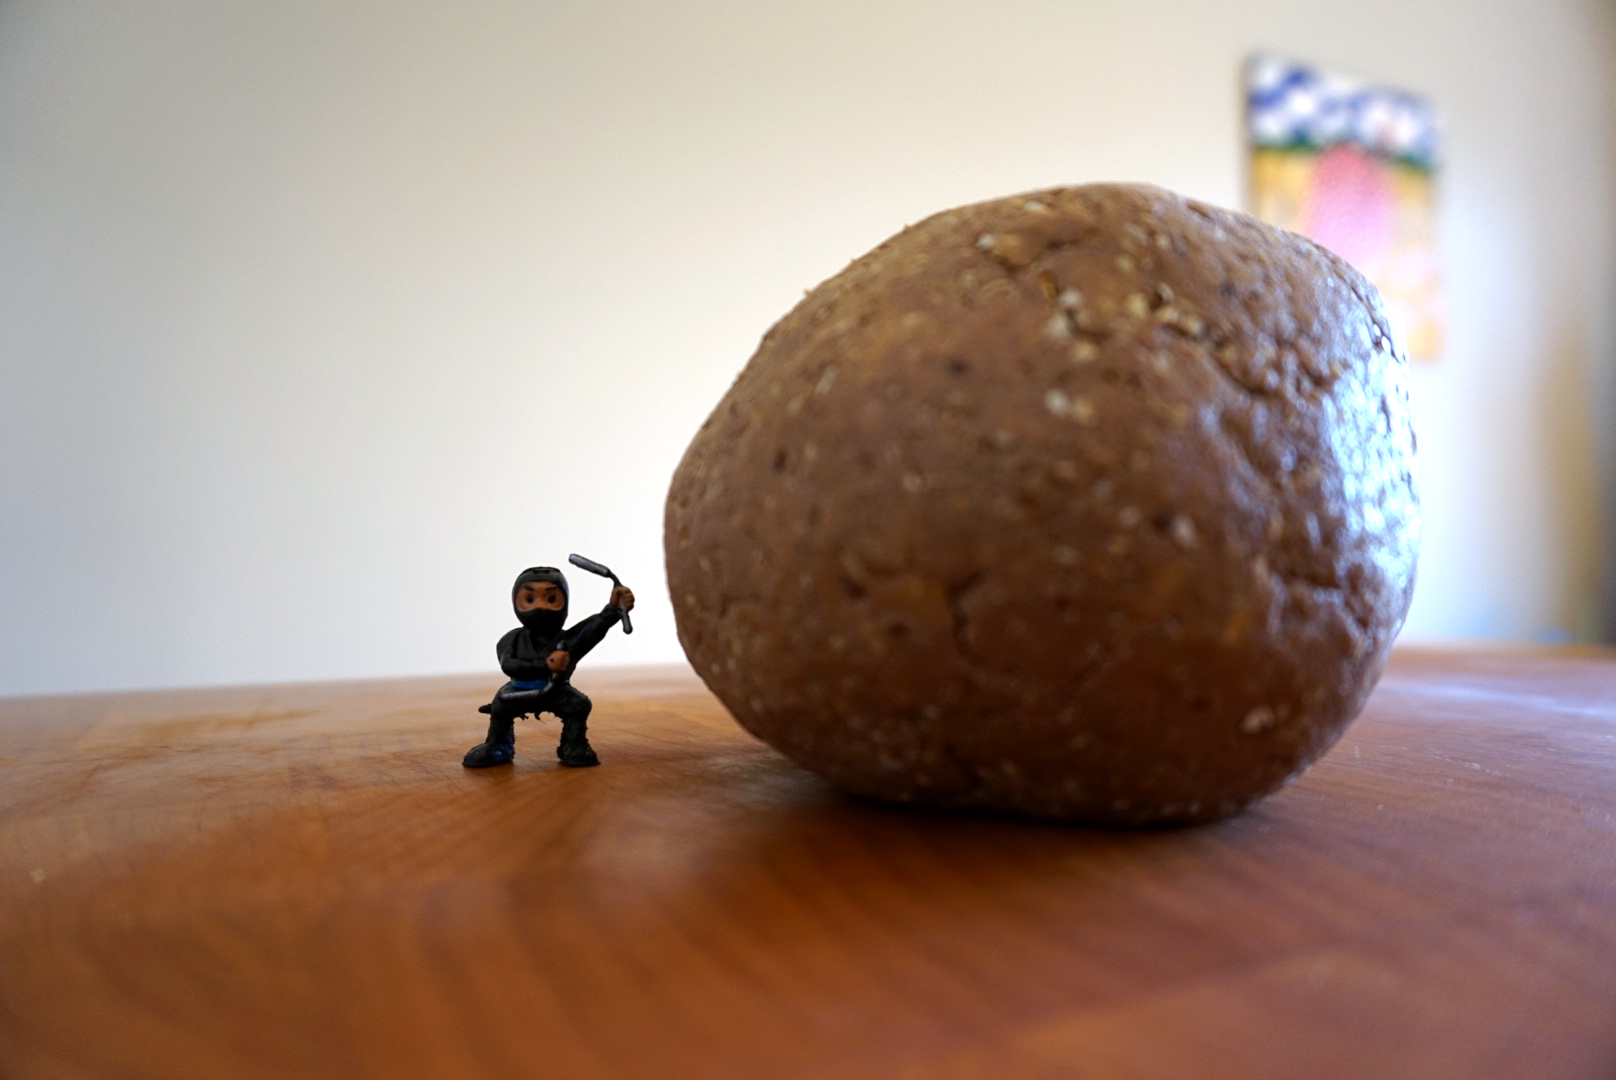 funny photo of energy ball with little ninja figure